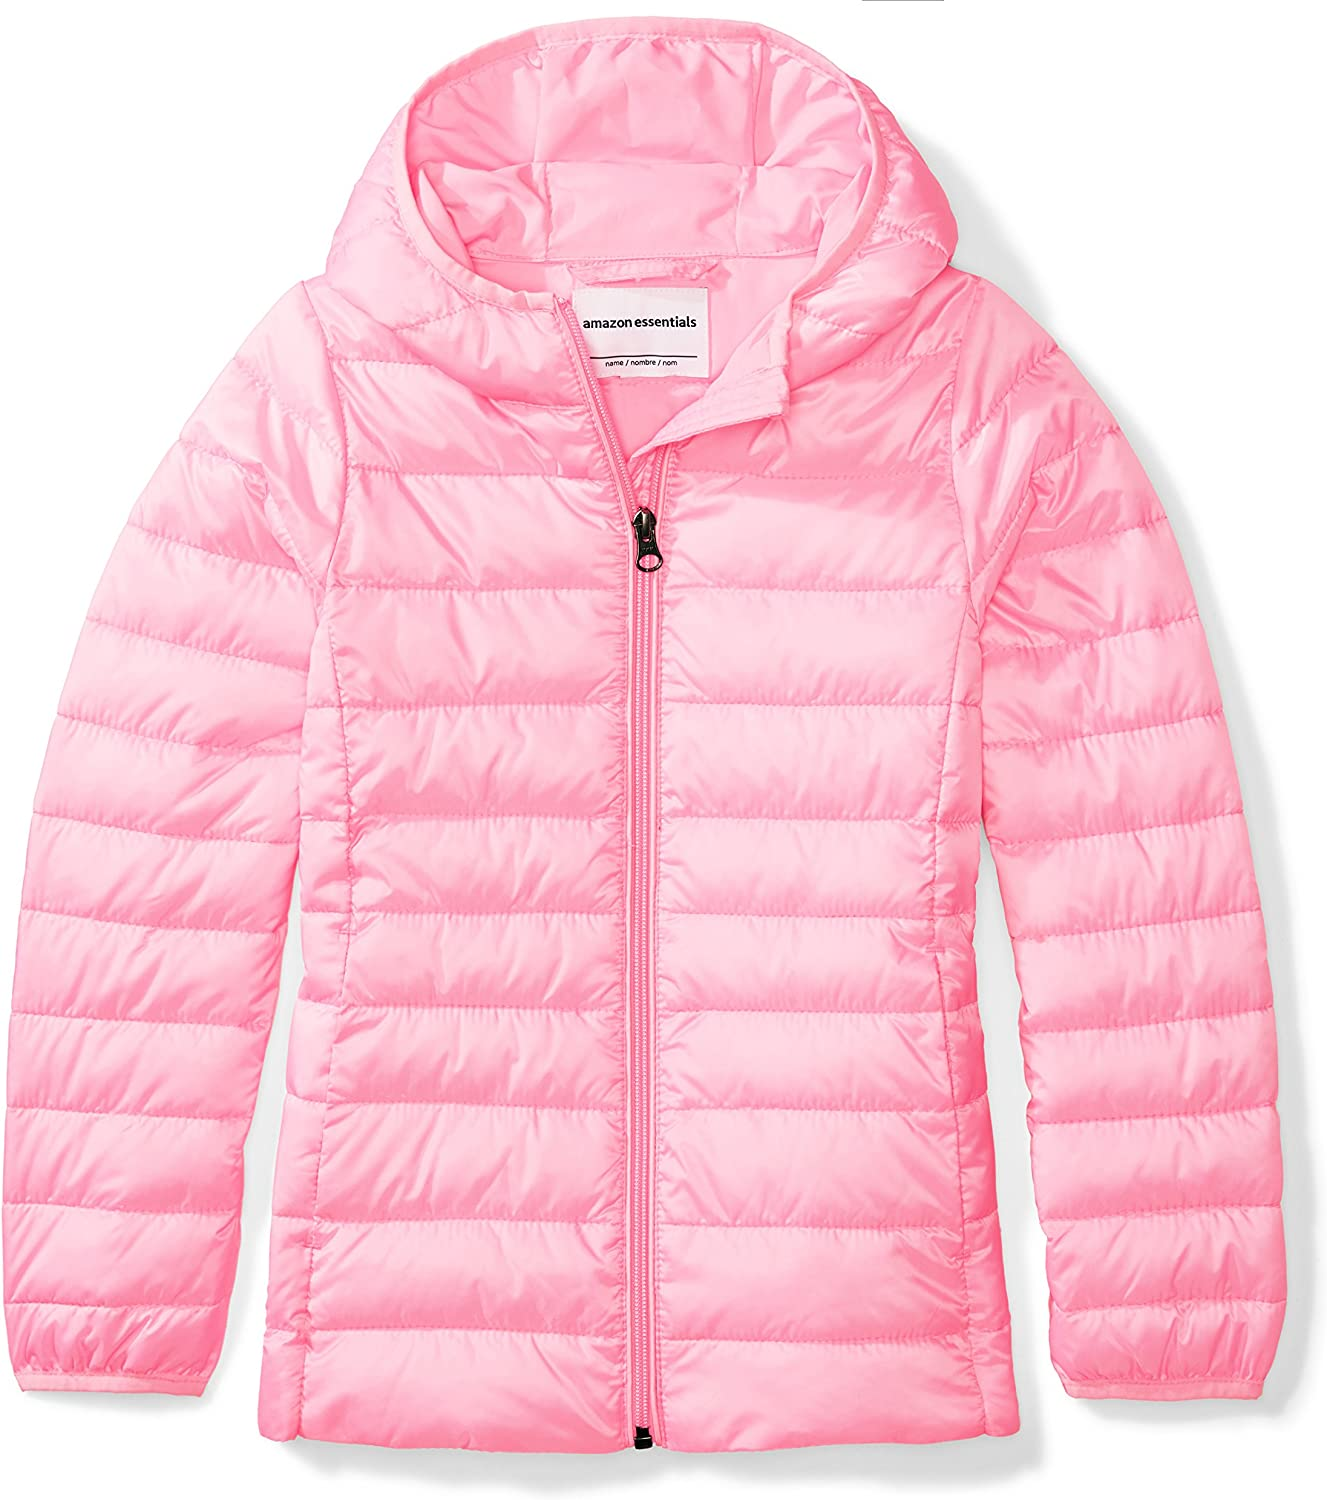 Essentials Girl's Lightweight Water-Resistant Packable Hooded Puffer Jacket: Clothing